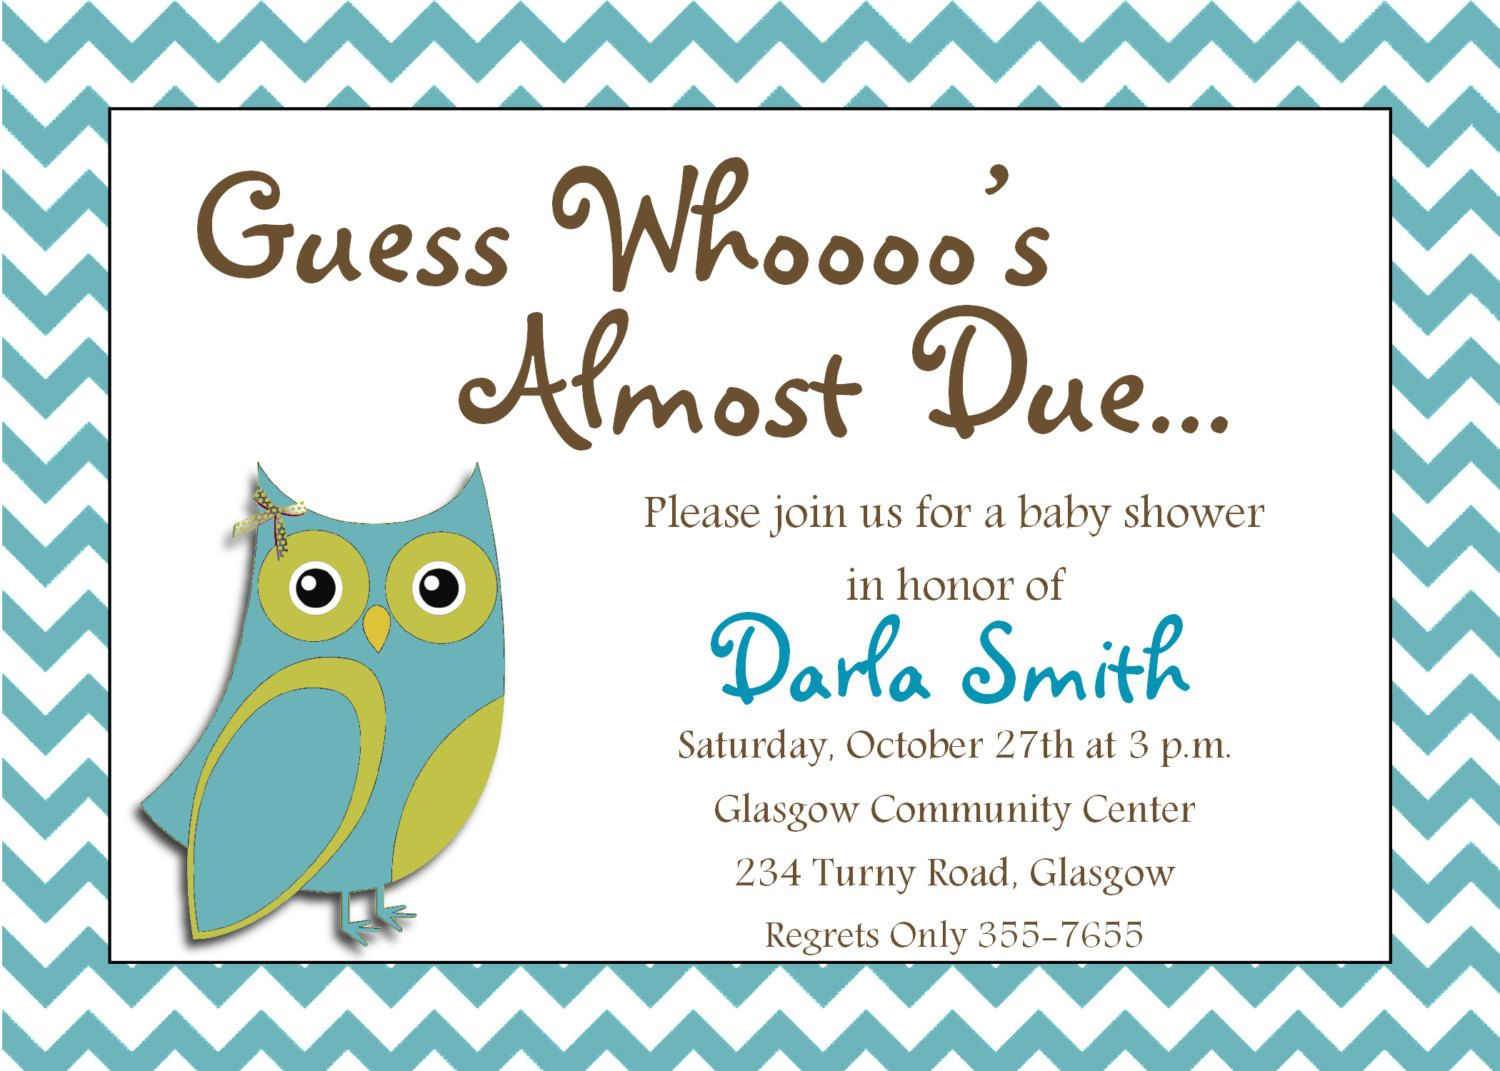 Baby Shower Invitations Free Templates Online Impressive How To Create Printable Party Invitations Ideas  Invitations .